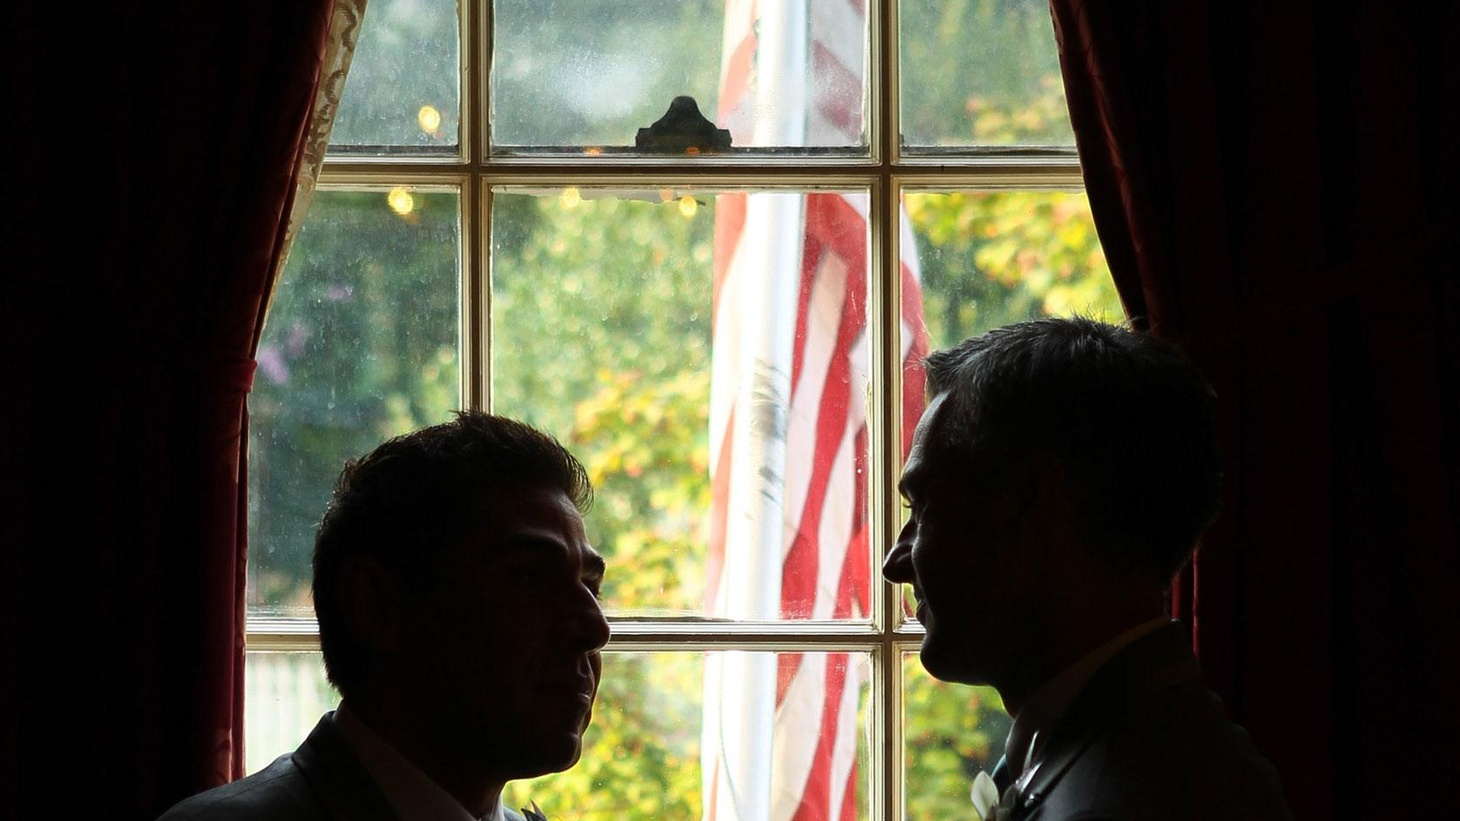 The Obama Justice Department has reversed its support for the Defense of Marriage Act, which has led to a legal battle with conservative groups and their lawyers. And Republicans who want to be president are also focused more on enforcing a congressional enactment than they are on same-sex marriage itself. Also, unemployment dips to a nearly two-year low. On Reporter's Notebook, spending, taxes and public opinion.